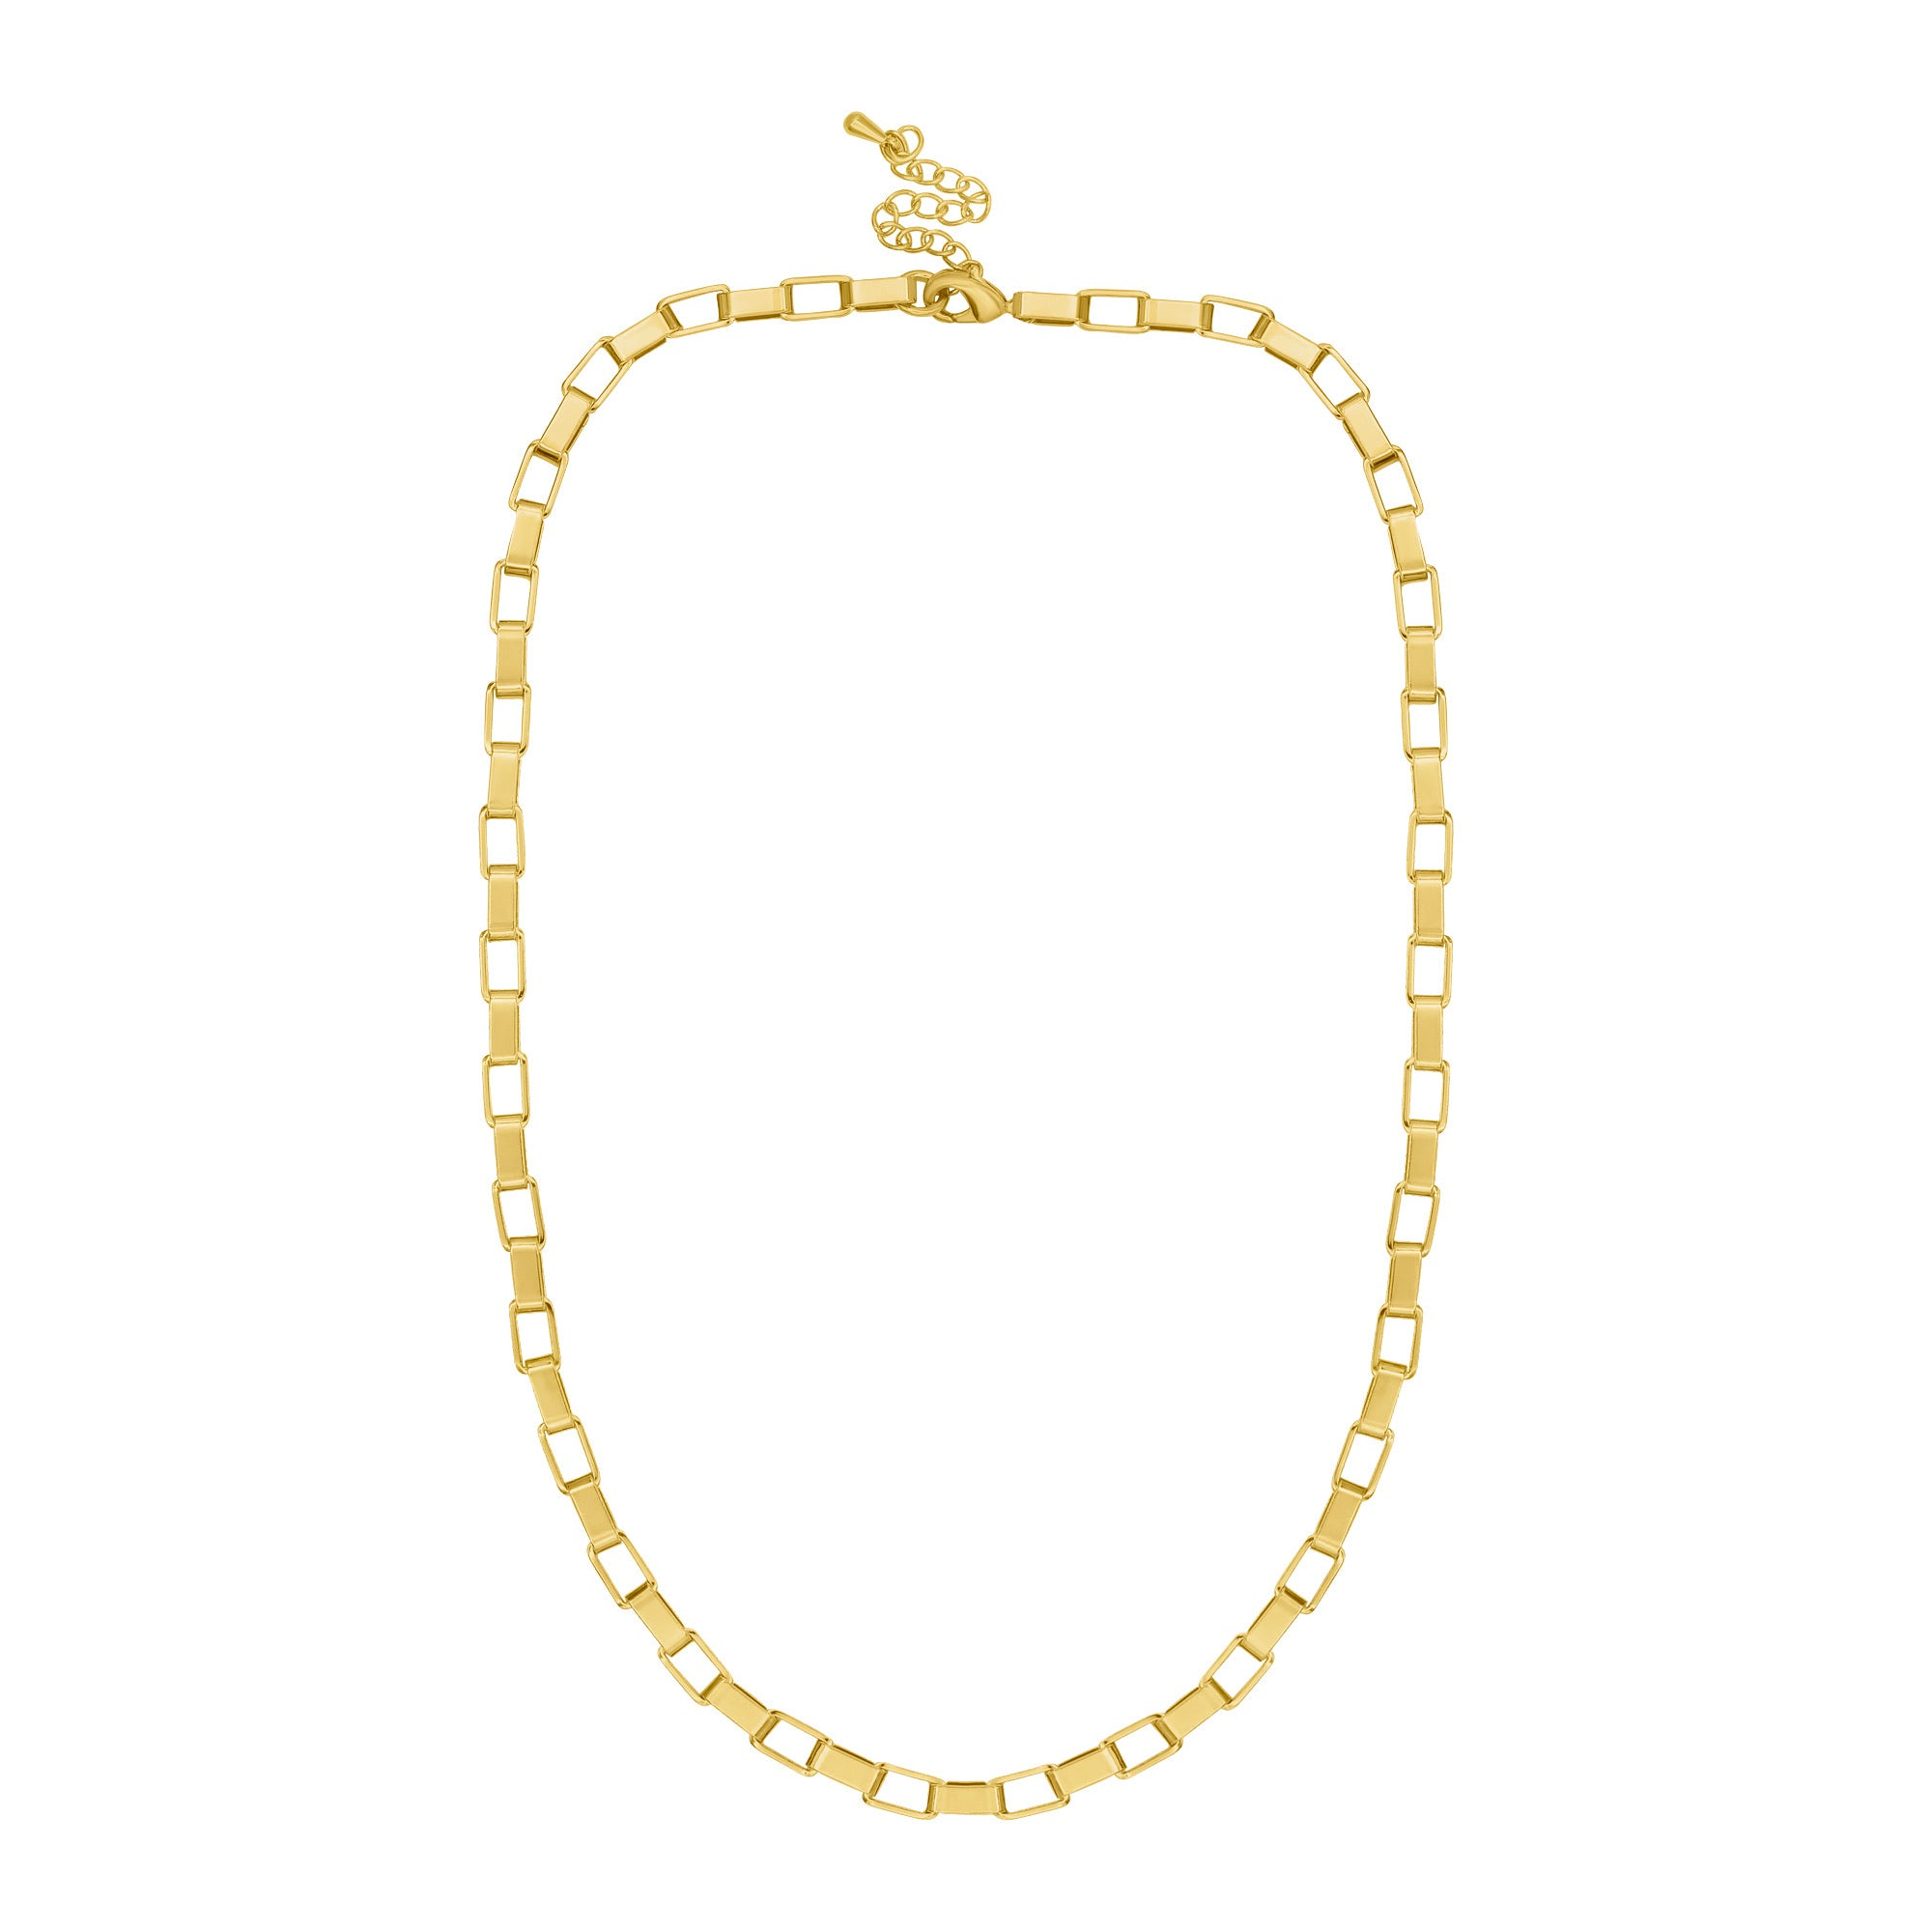 Marbella gold plated chain